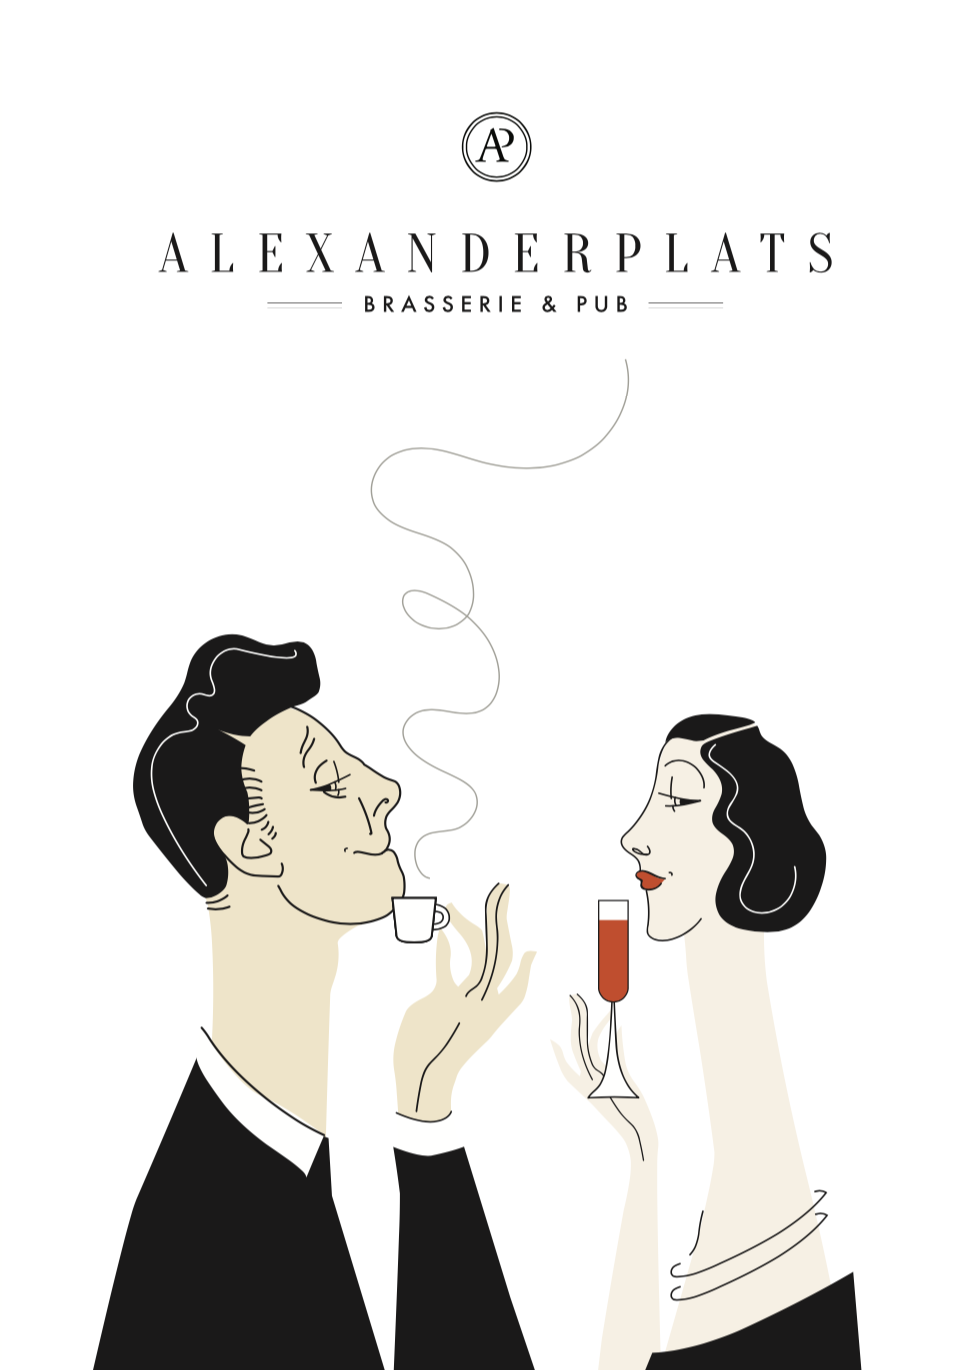 illustration for Alexanderplats